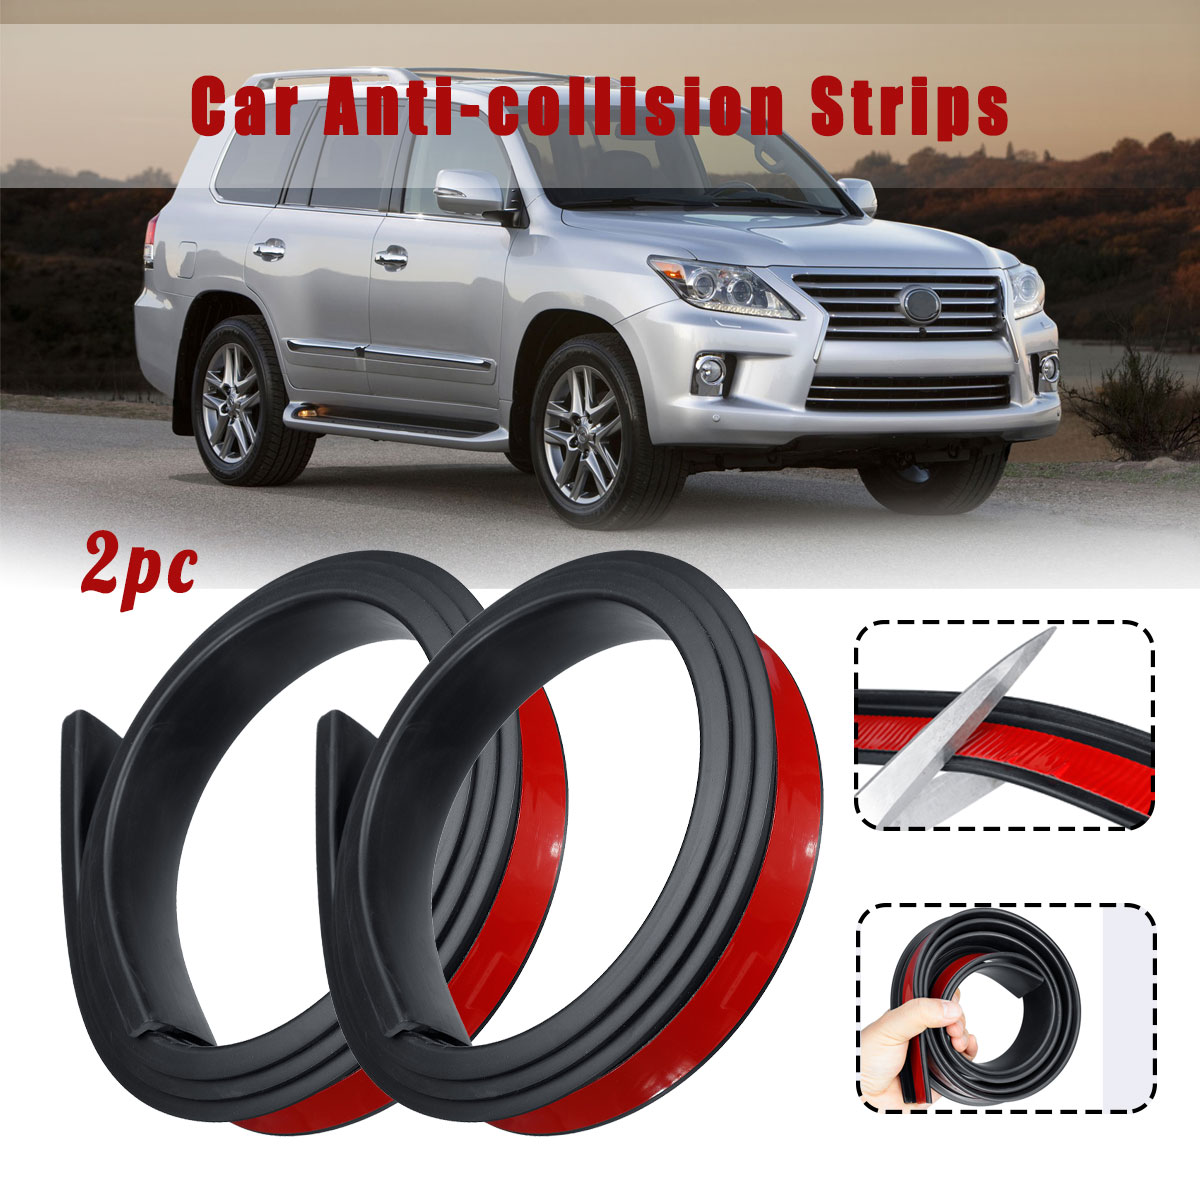 2Pcs Universal Car Tire Wheel Brow Arch Protection Rubber Moldings Anti-collision Mudguard Wheel Protection Cover Sticker Strips